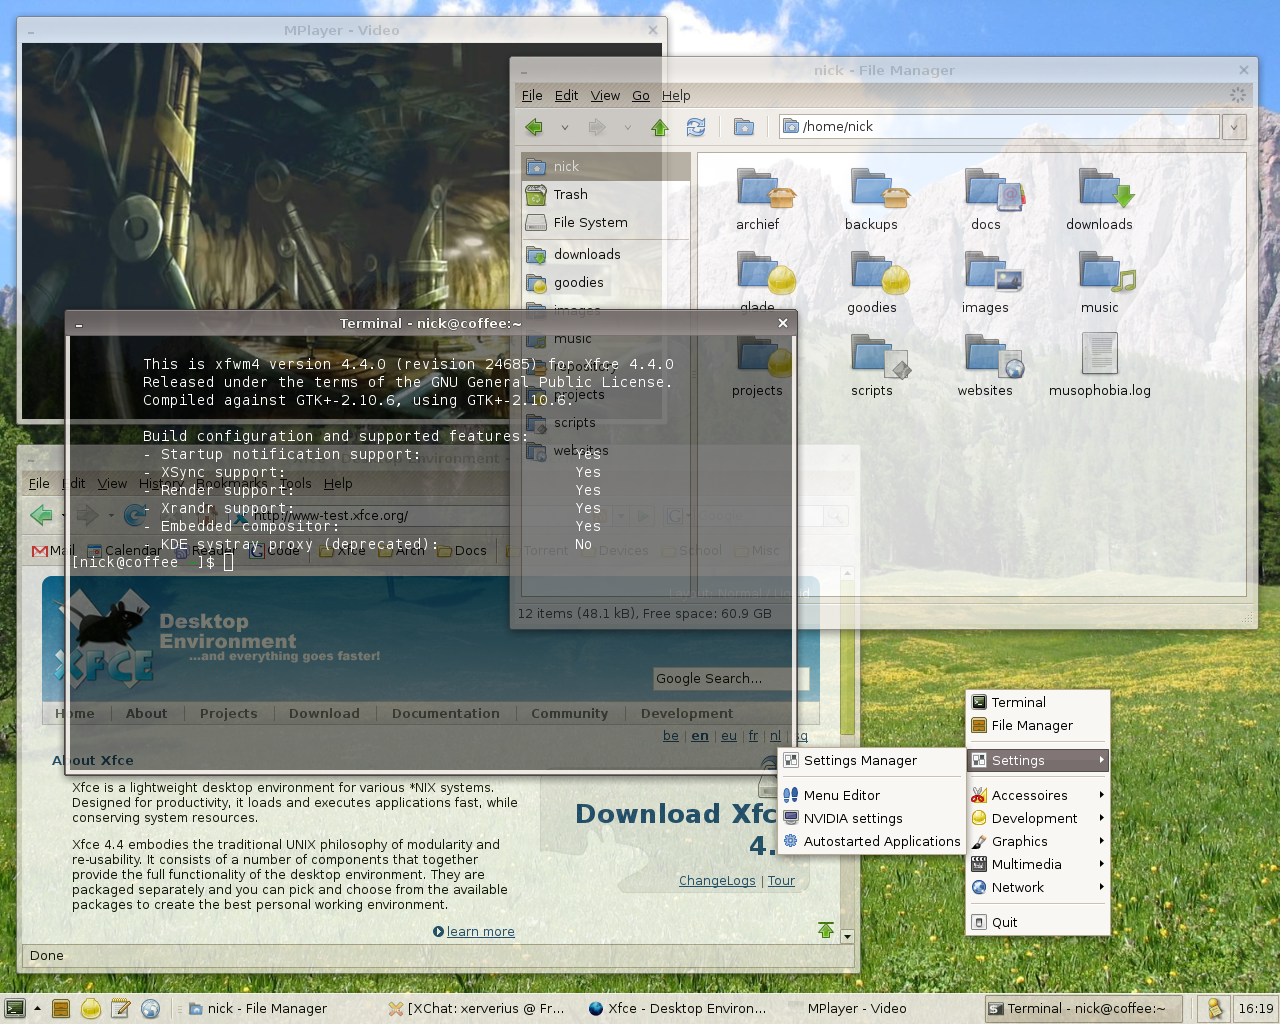 http://upload.wikimedia.org/wikipedia/commons/7/71/Xfce-4.4.png